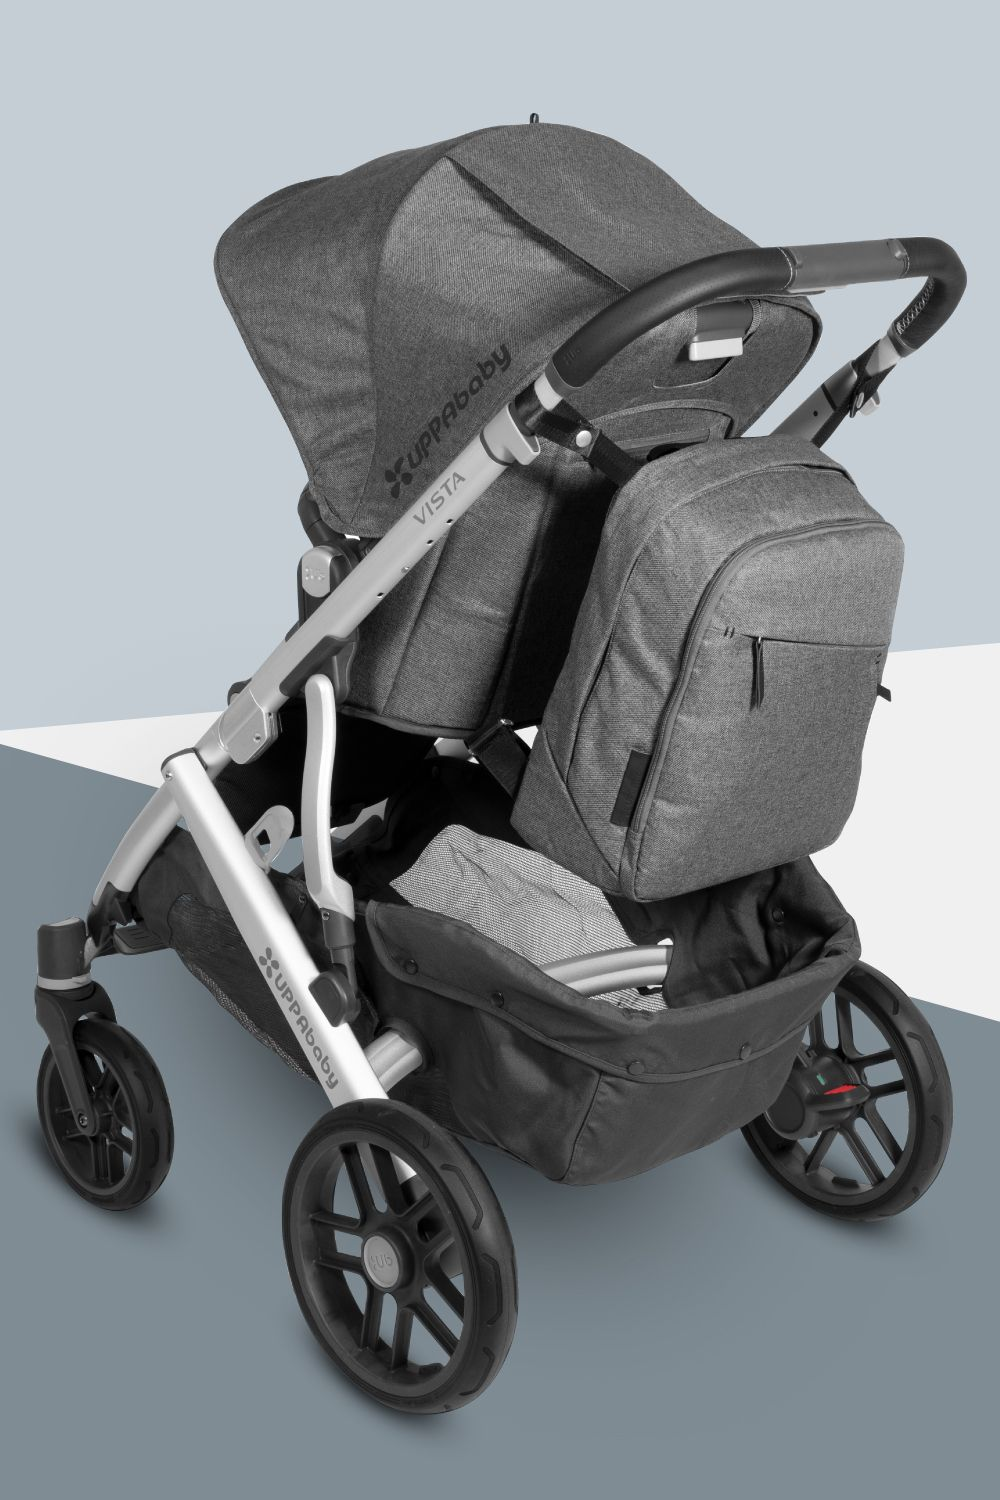 The UPPAbaby VISTA stroller has long been one of our most